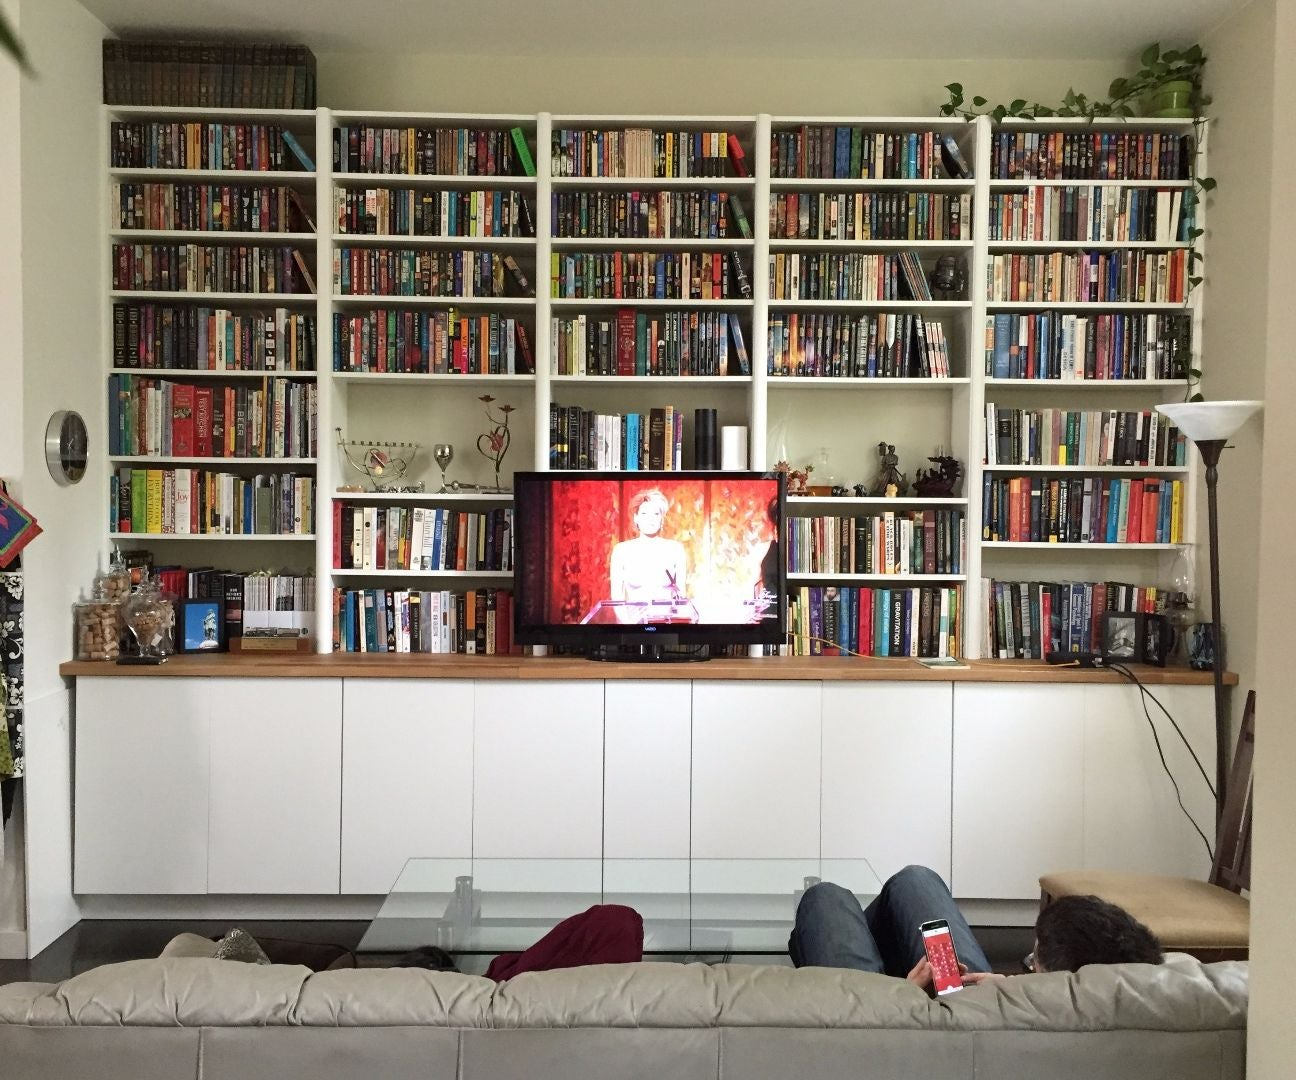 Ikea Hack: Built-in Cabinets And Bookshelves: 6 Steps (with Pictures)